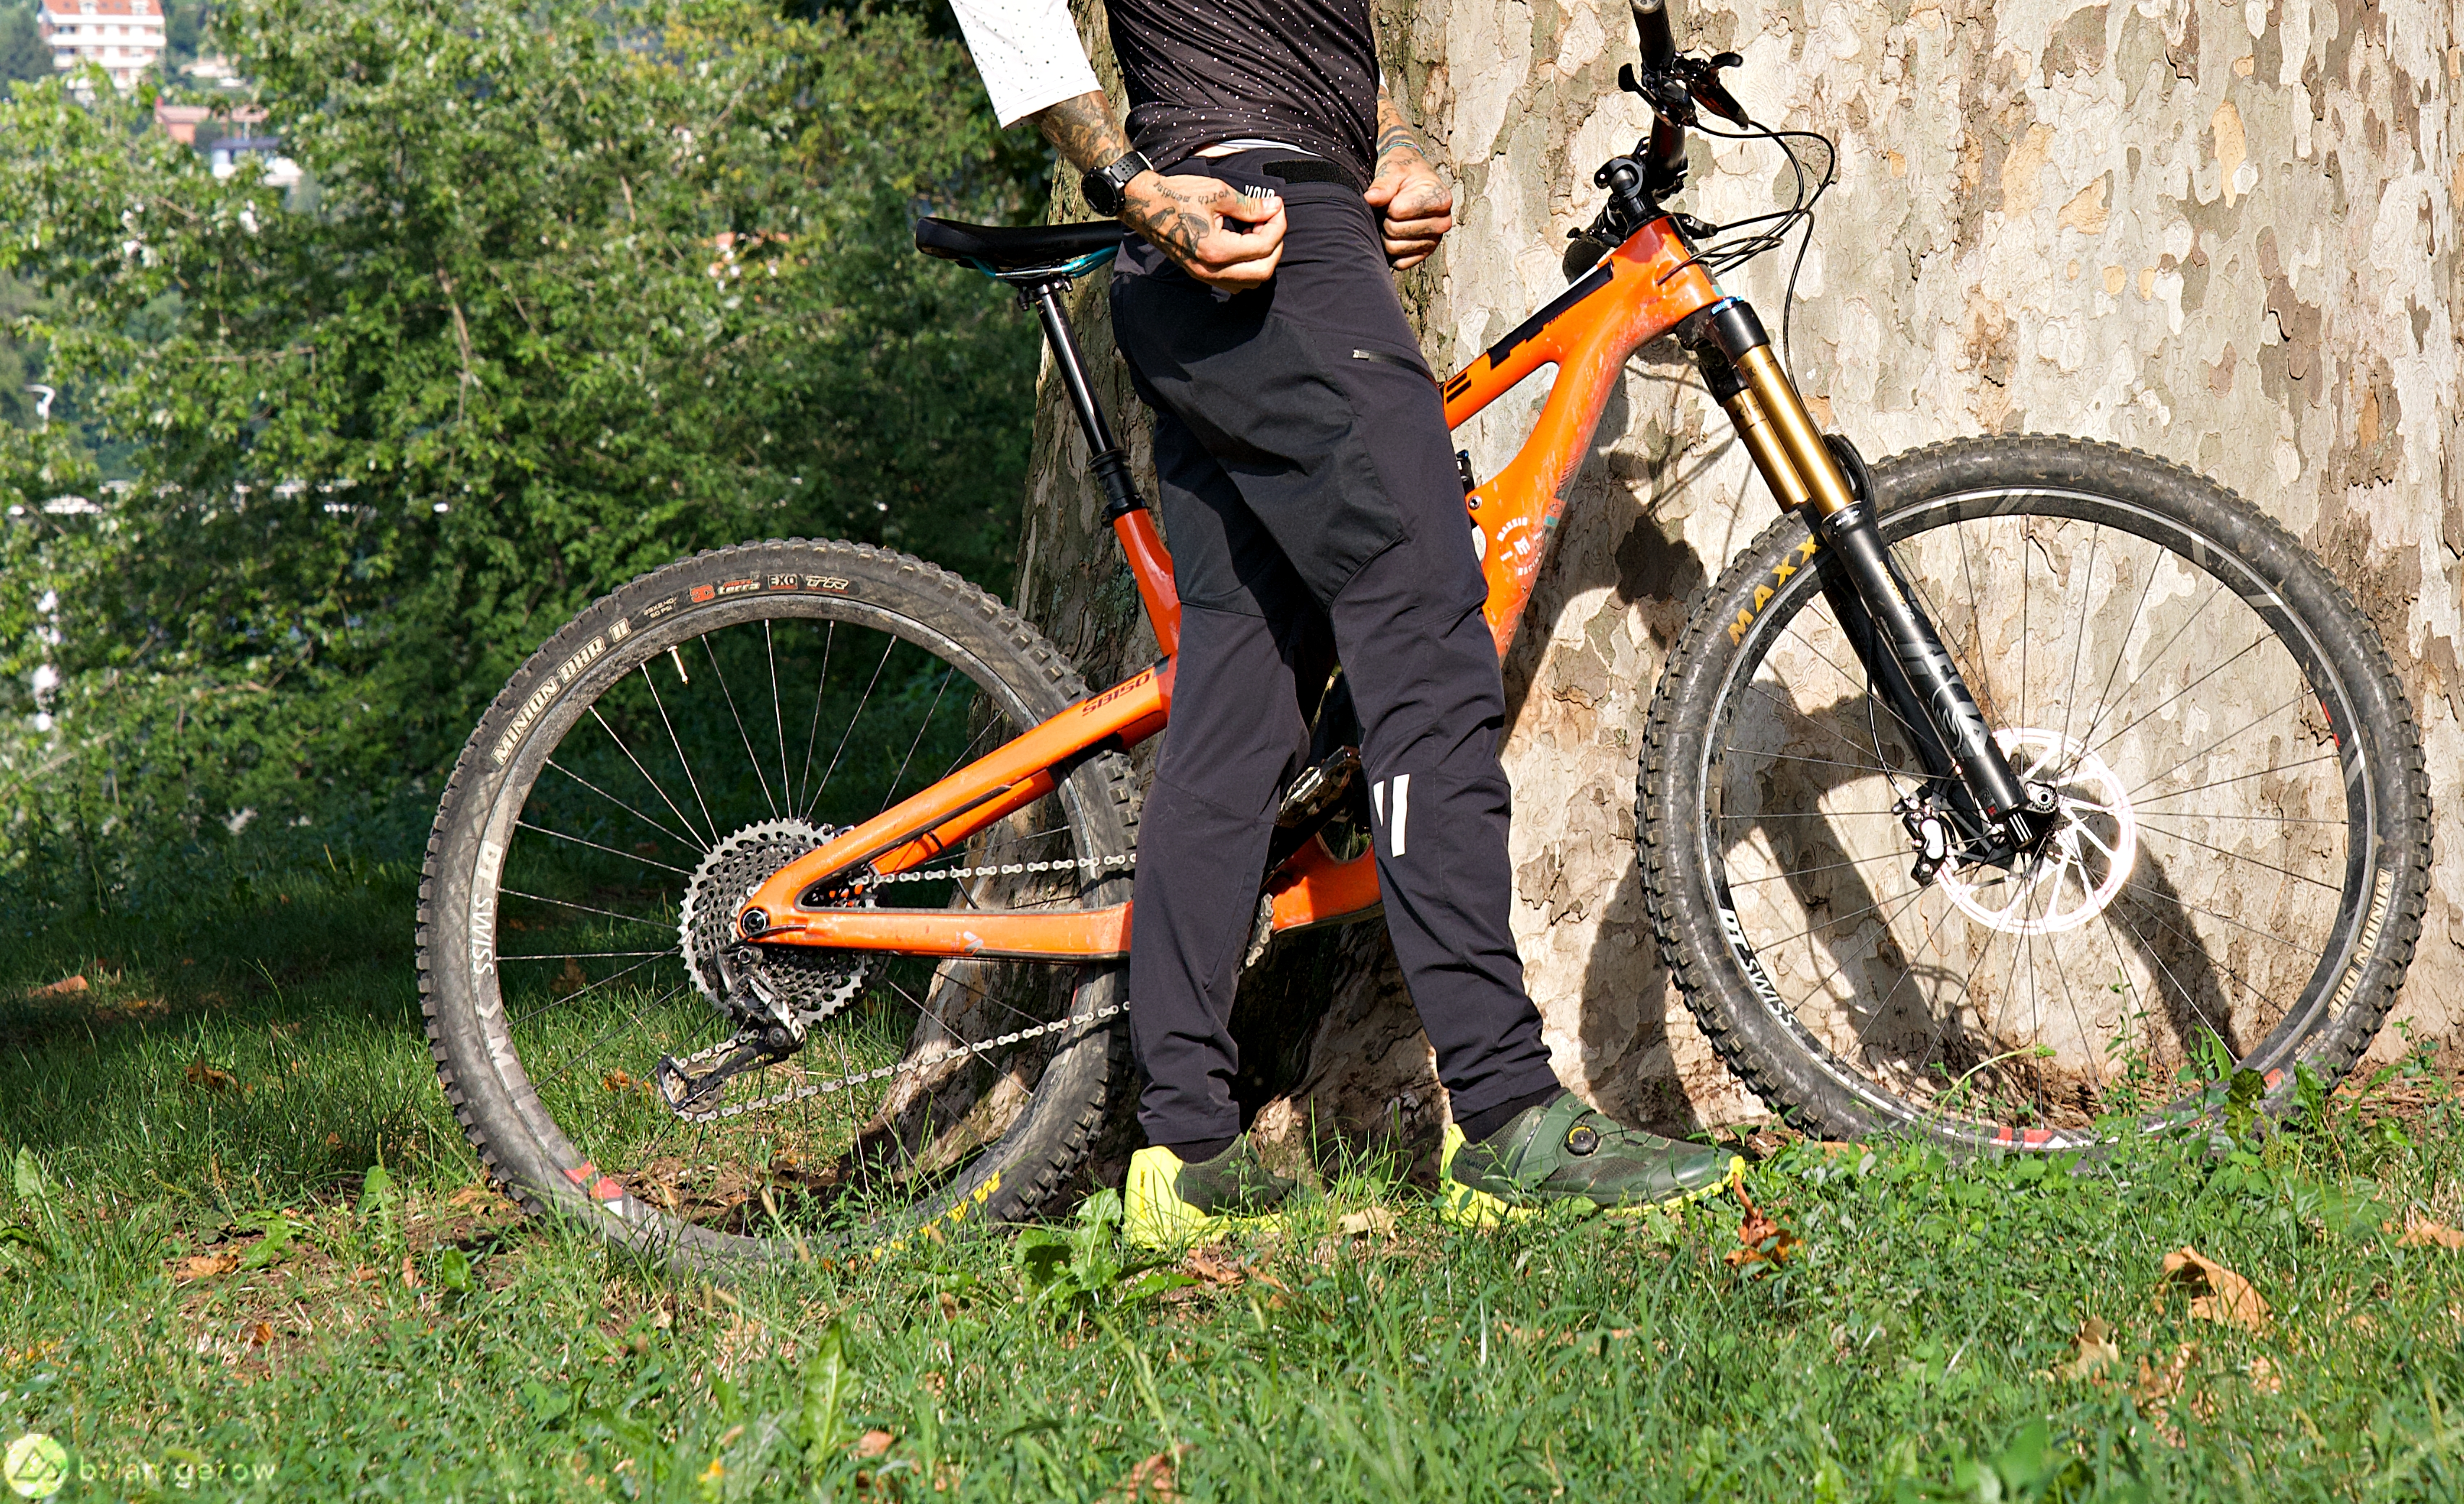 Void Cycling Range Riding Pants Fit Superbly and Add Tough Protection - Singletracks Mountain Bike News